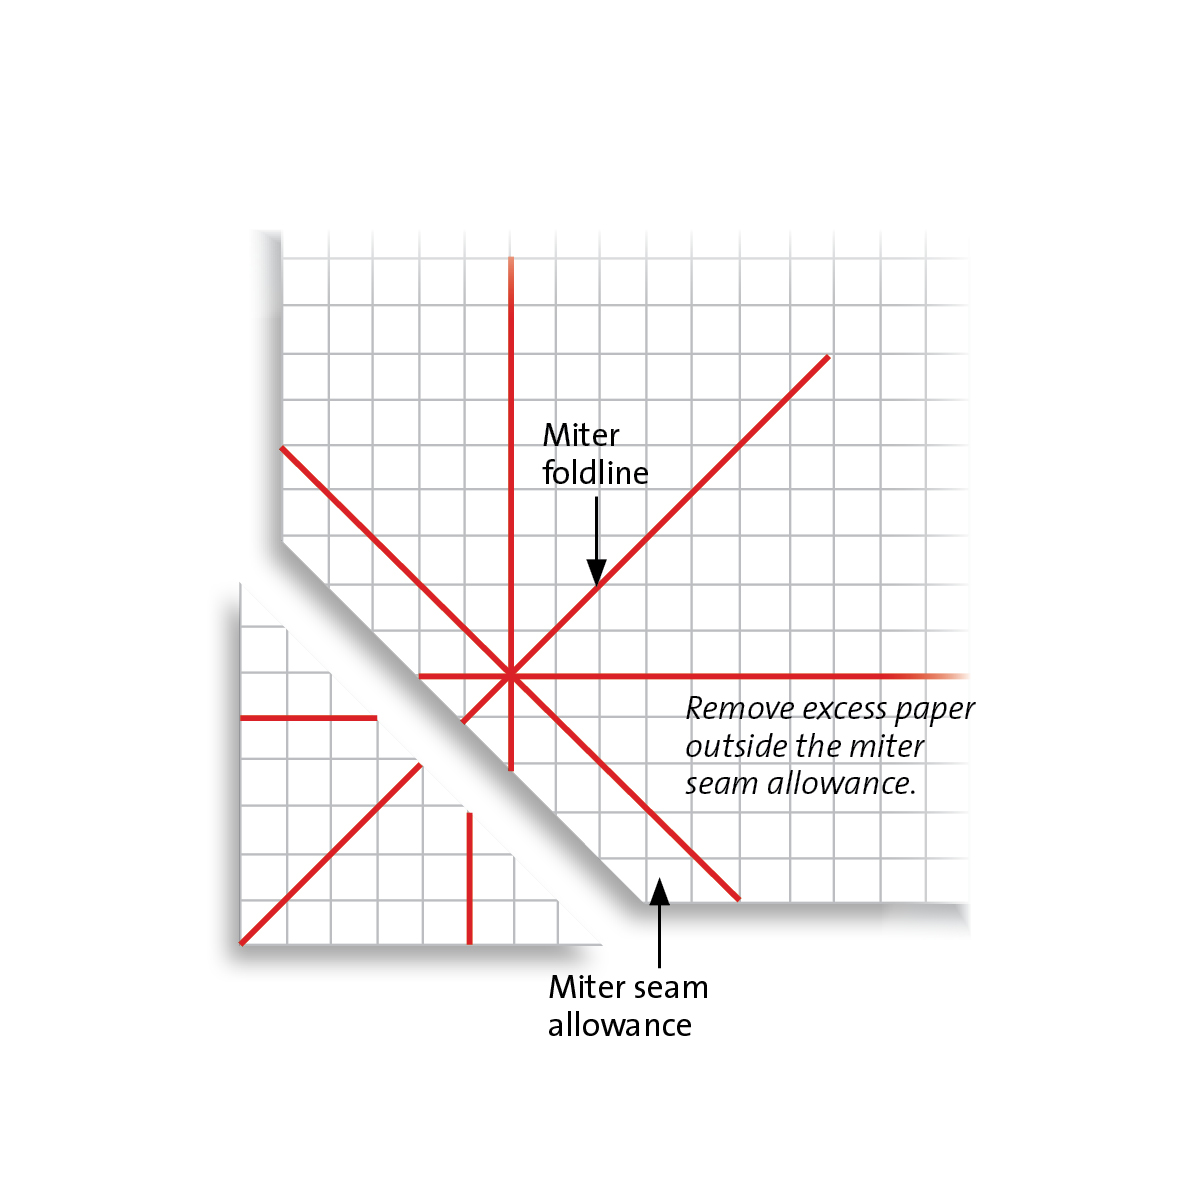 Excess miter seam allowance paper removed from graph paper illustration